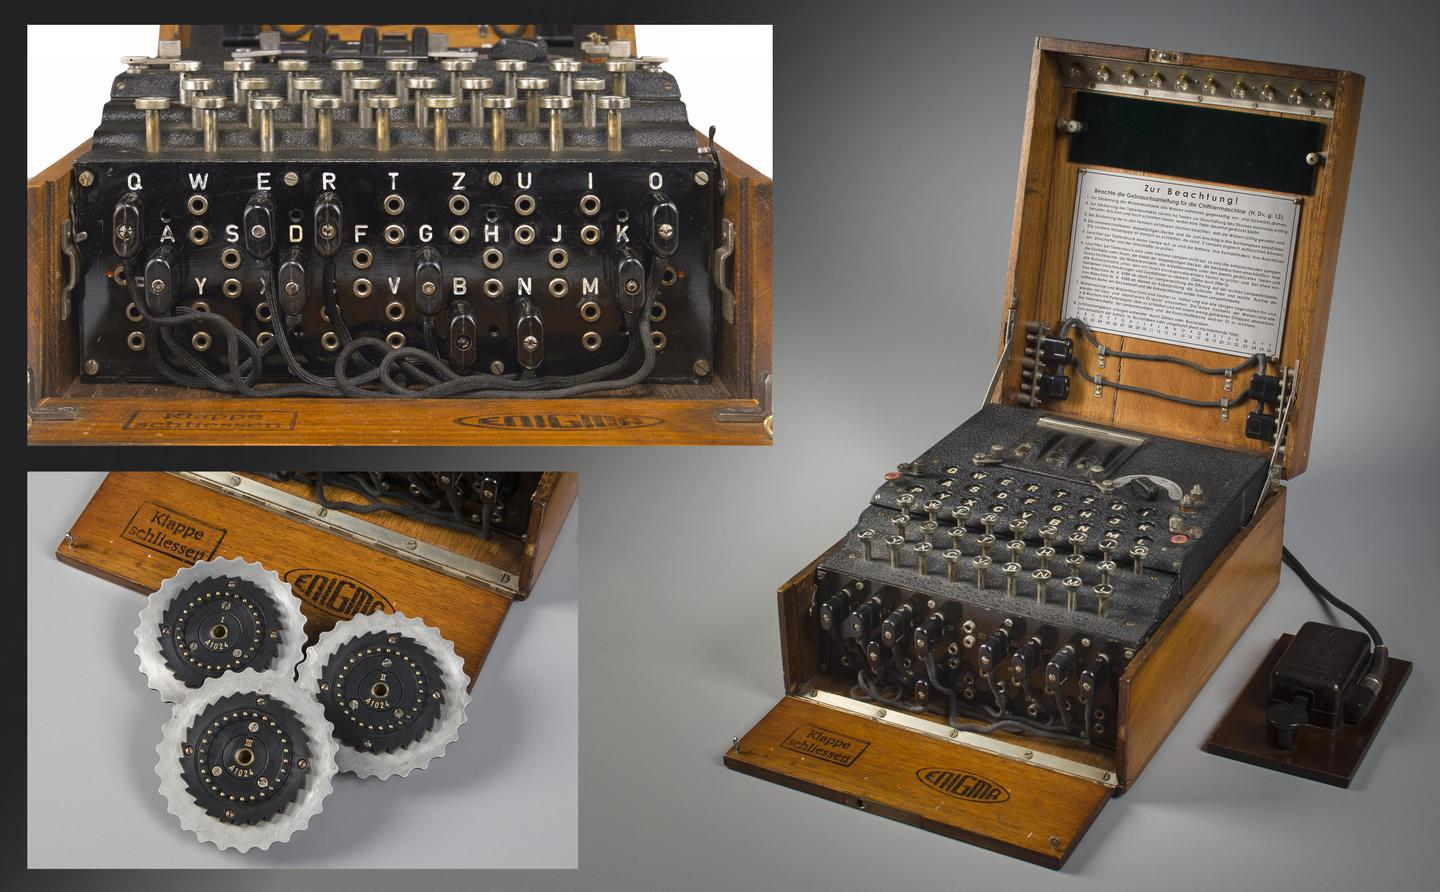 "At Bletchley Park, Turing worked on an electromechanical device designed to facilitate the deciphering of messages created by the German Enigma cypher machines. Named the ""bombe"" in deference to its predecessor, the Bomba Kryptologiczna which was created by the Polish Cipher Bureau, Turing's own device improved on the Polish machine and through its various iterations became one of the premier code breaking weapons in the armory of the Allies, allowing the deciphering of many vital messages sent by Axis powers."